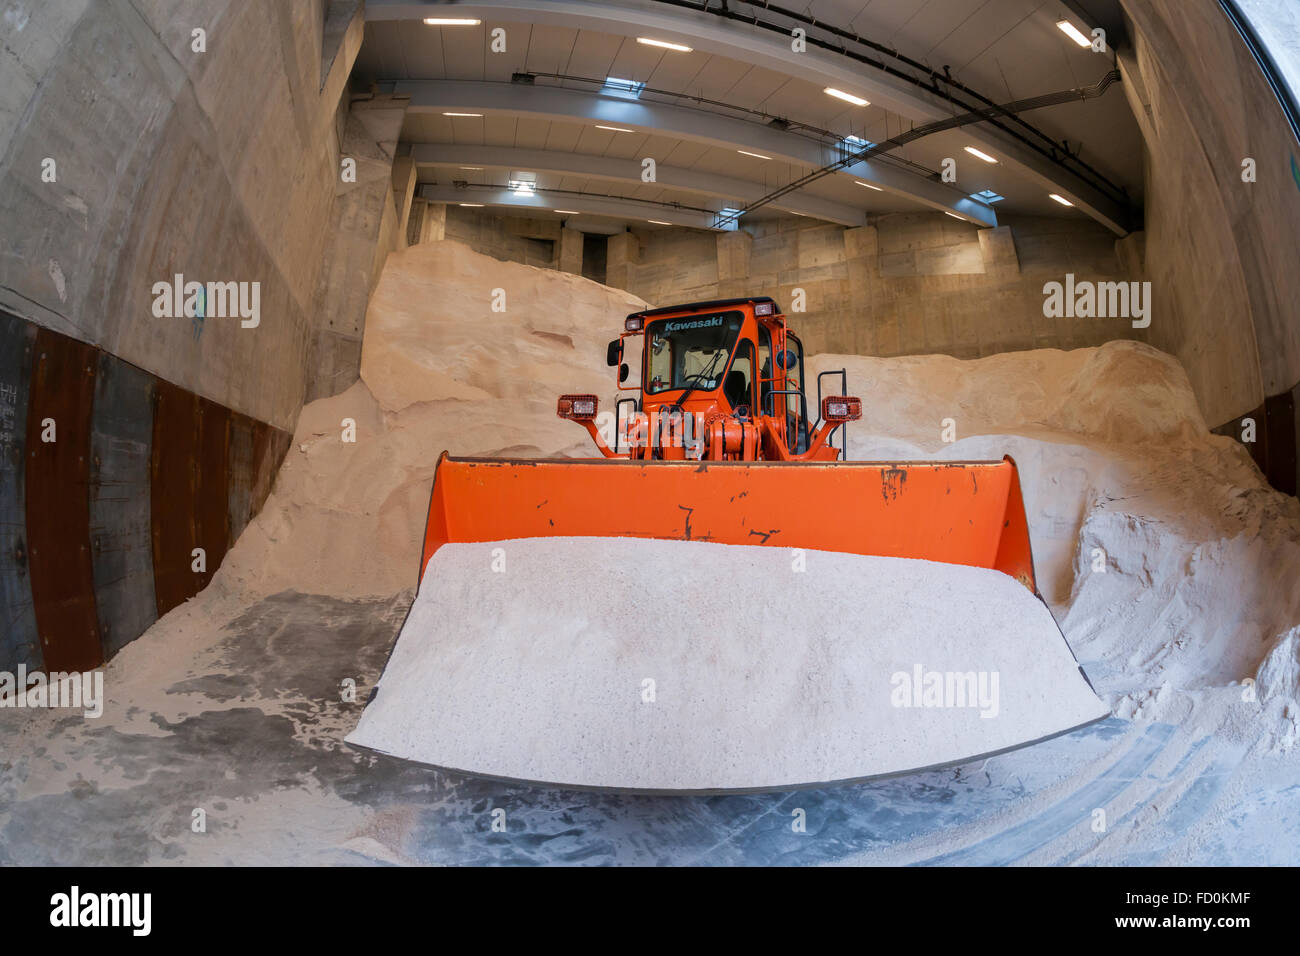 Piles of salt and equipment await this weekends winter snowstorm at the New York City Dept. of Sanitation Salt Shed - Stock Image